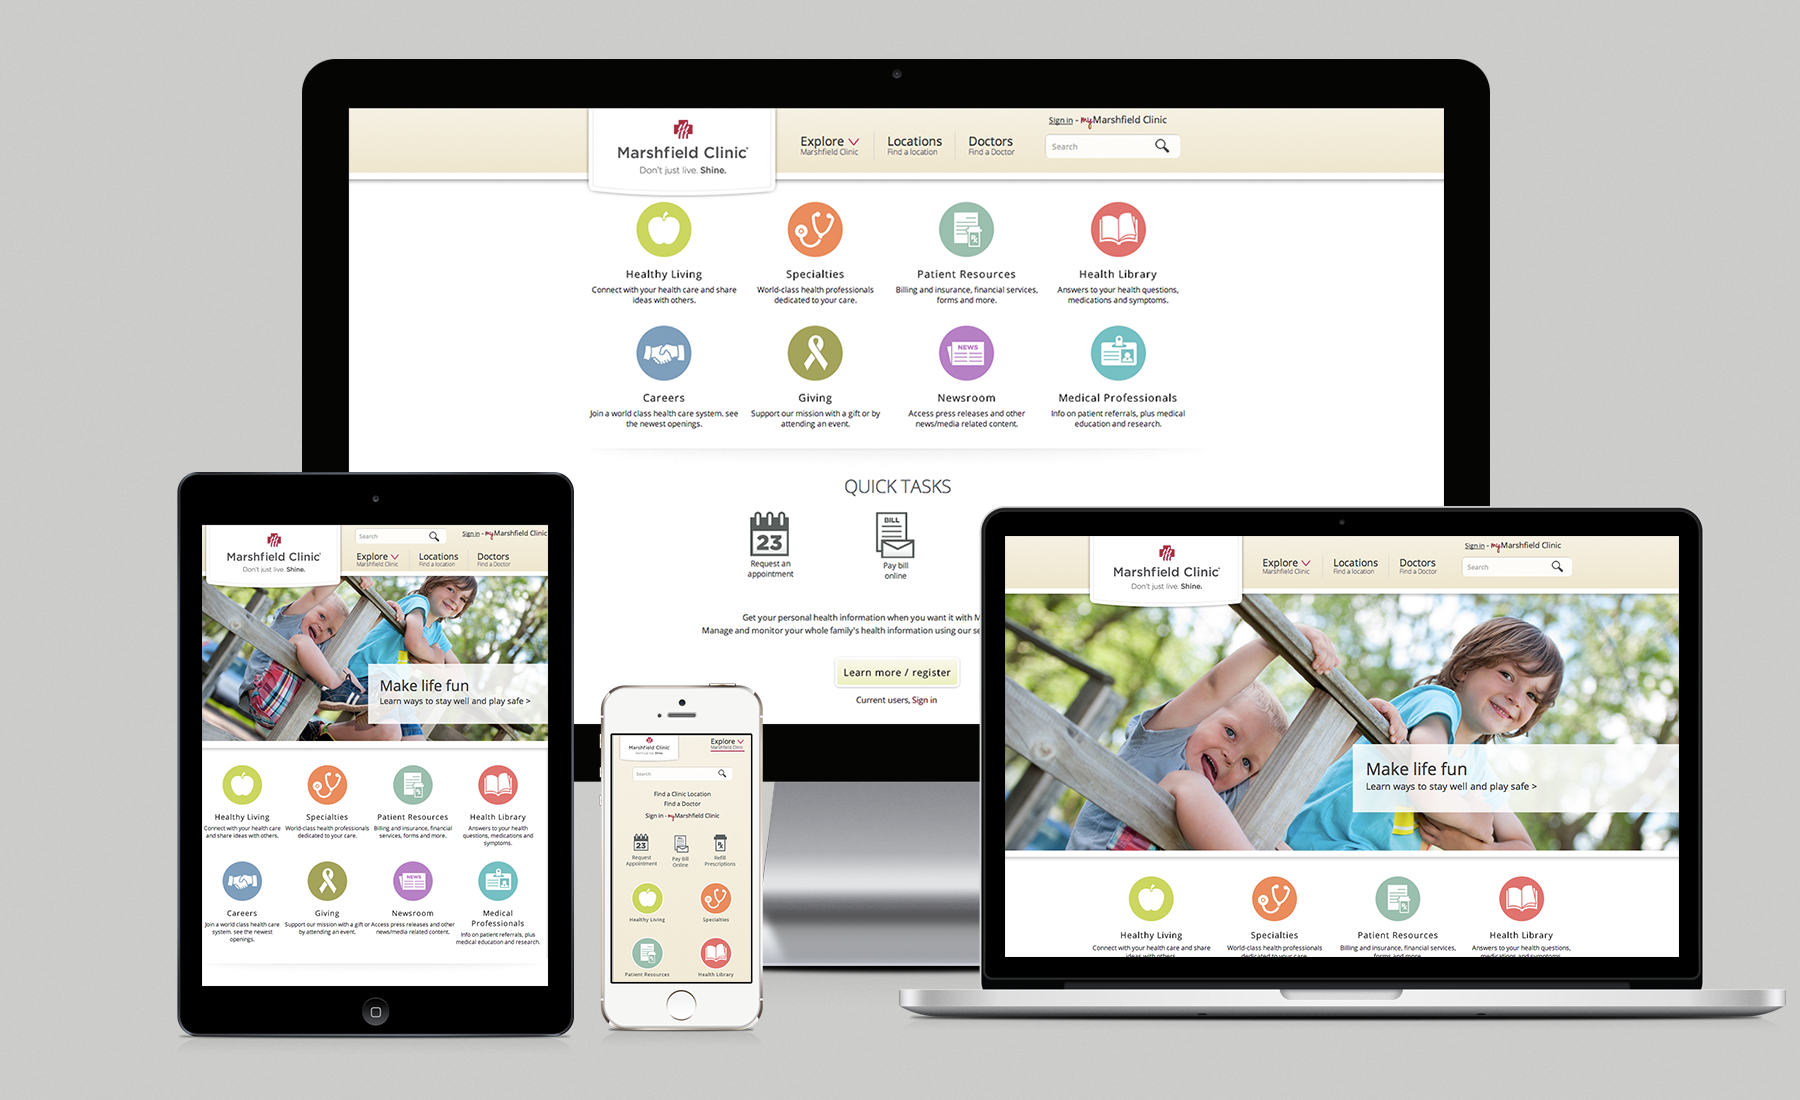 Collection of computer, tablet and mobile device displaying Marshfield Clinic landing page